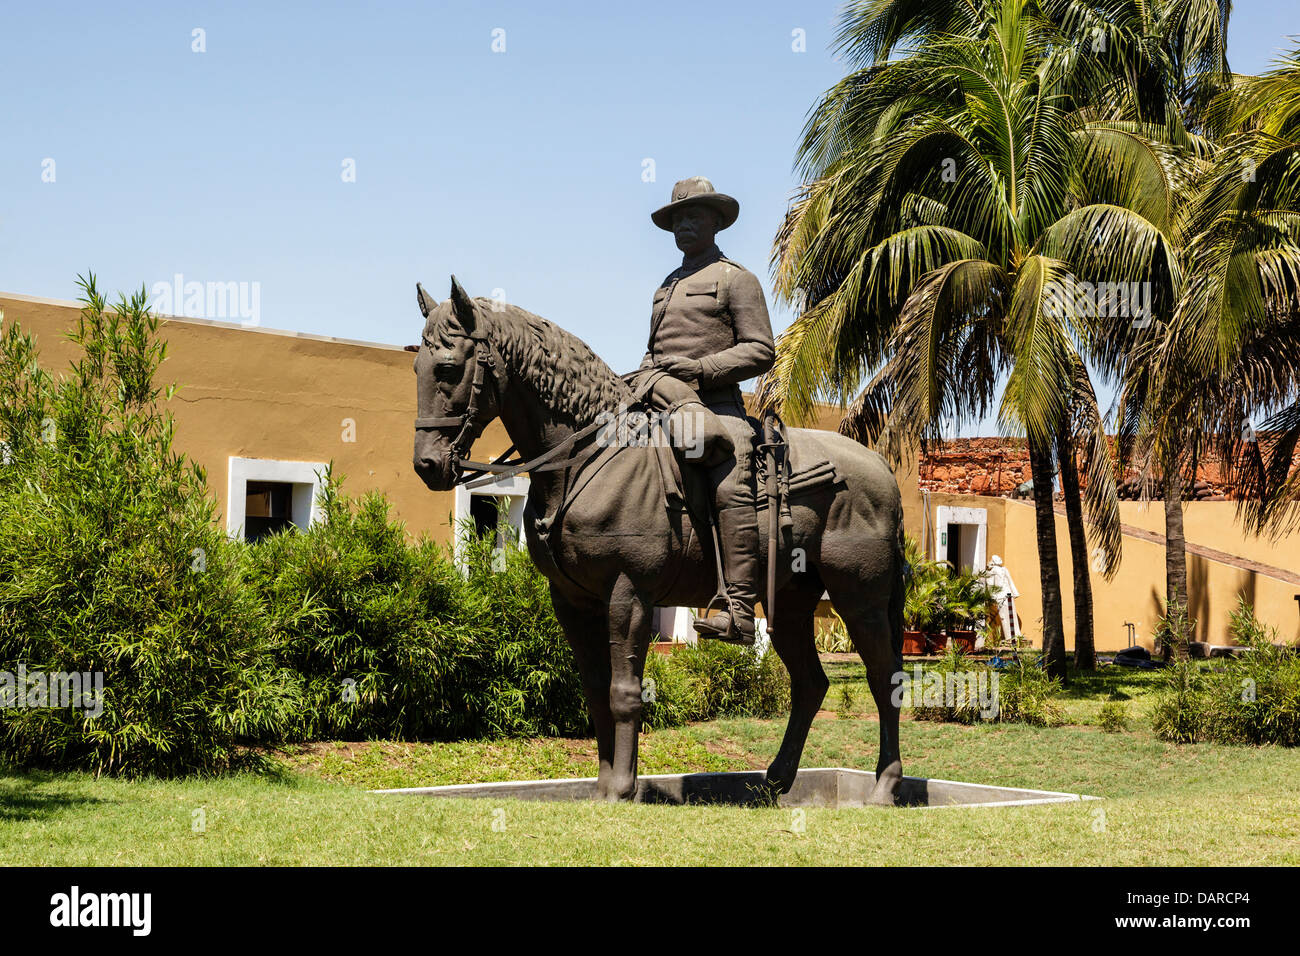 Africa, Mozambique, Maputo. Sculpture of Portuguese colonialist on horse at Old Fort. - Stock Image